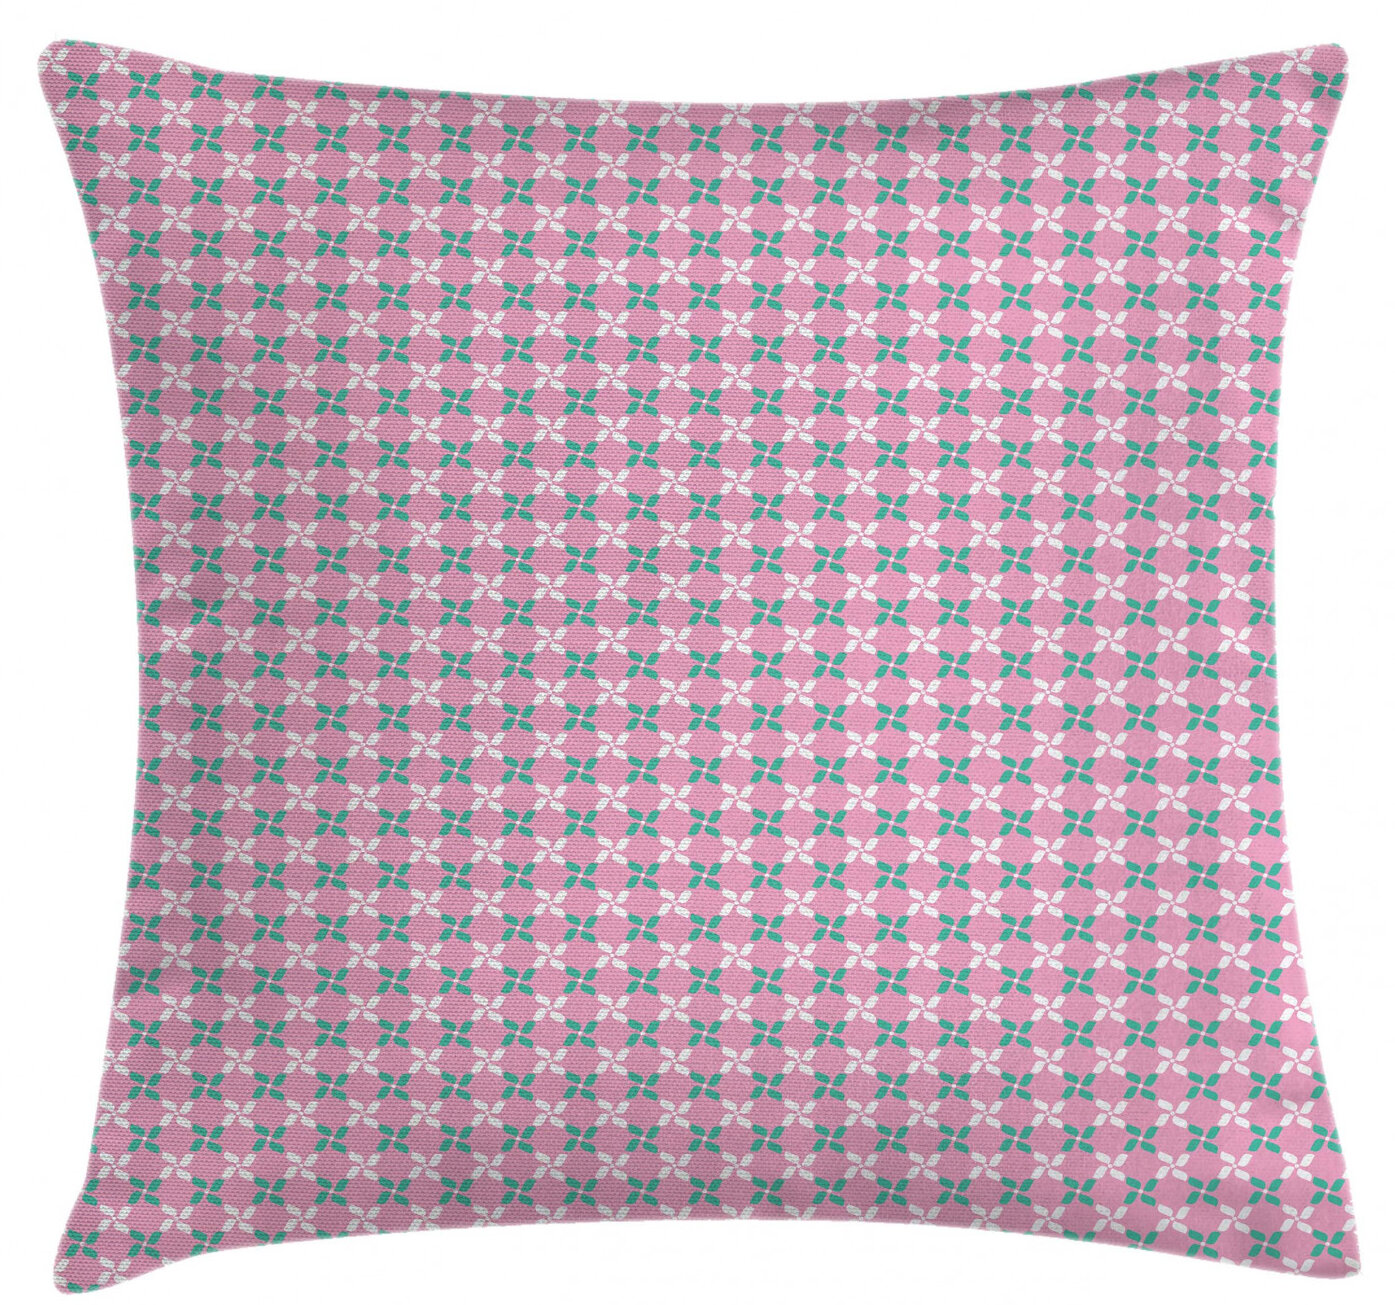 East Urban Home Ambesonne Floral Throw Pillow Cushion Cover Spring Flower Motifs In White And Green Chain Pattern On Pink Background Decorative Square Accent Pillow Case 26 X 26 Baby Pink Teal